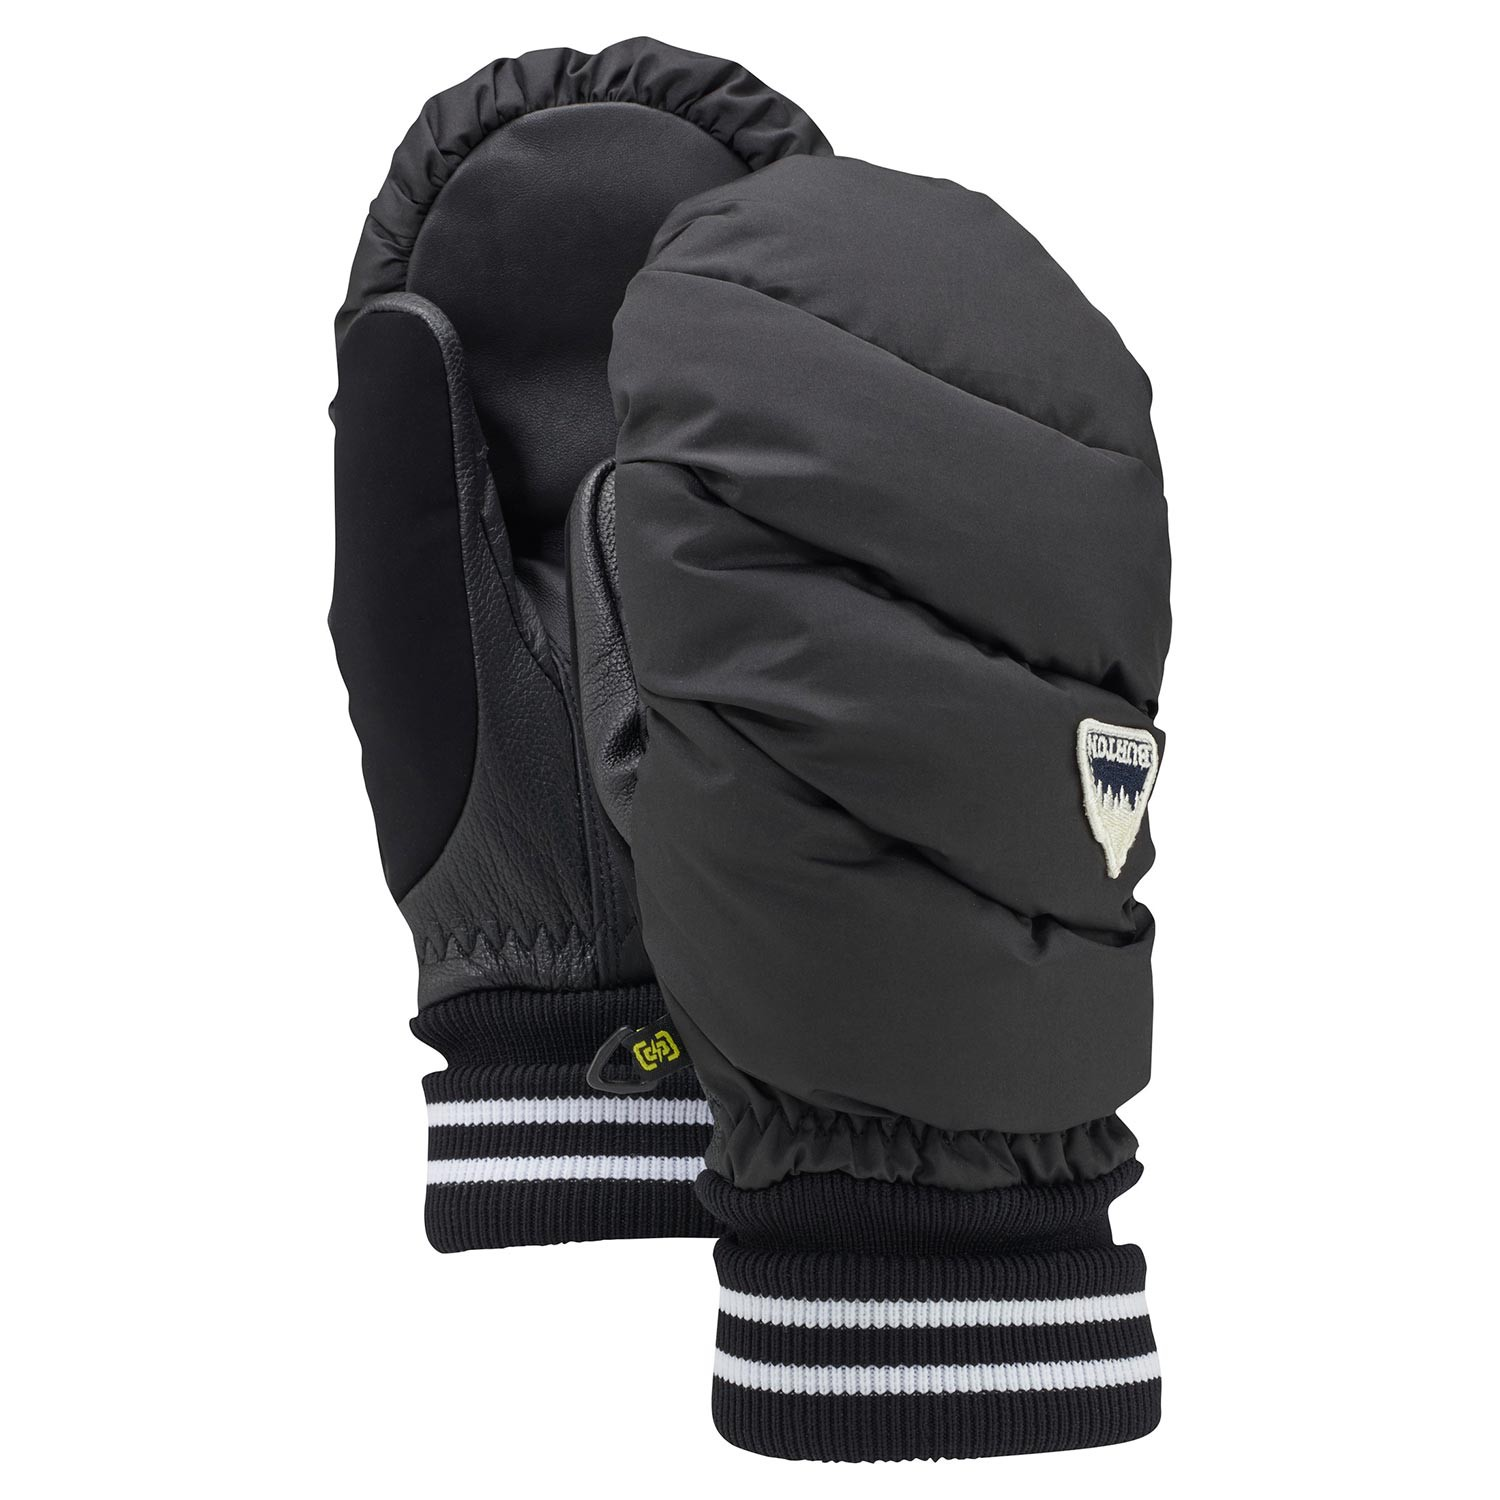 Rukavice Burton Wms Warmest Mitt true black